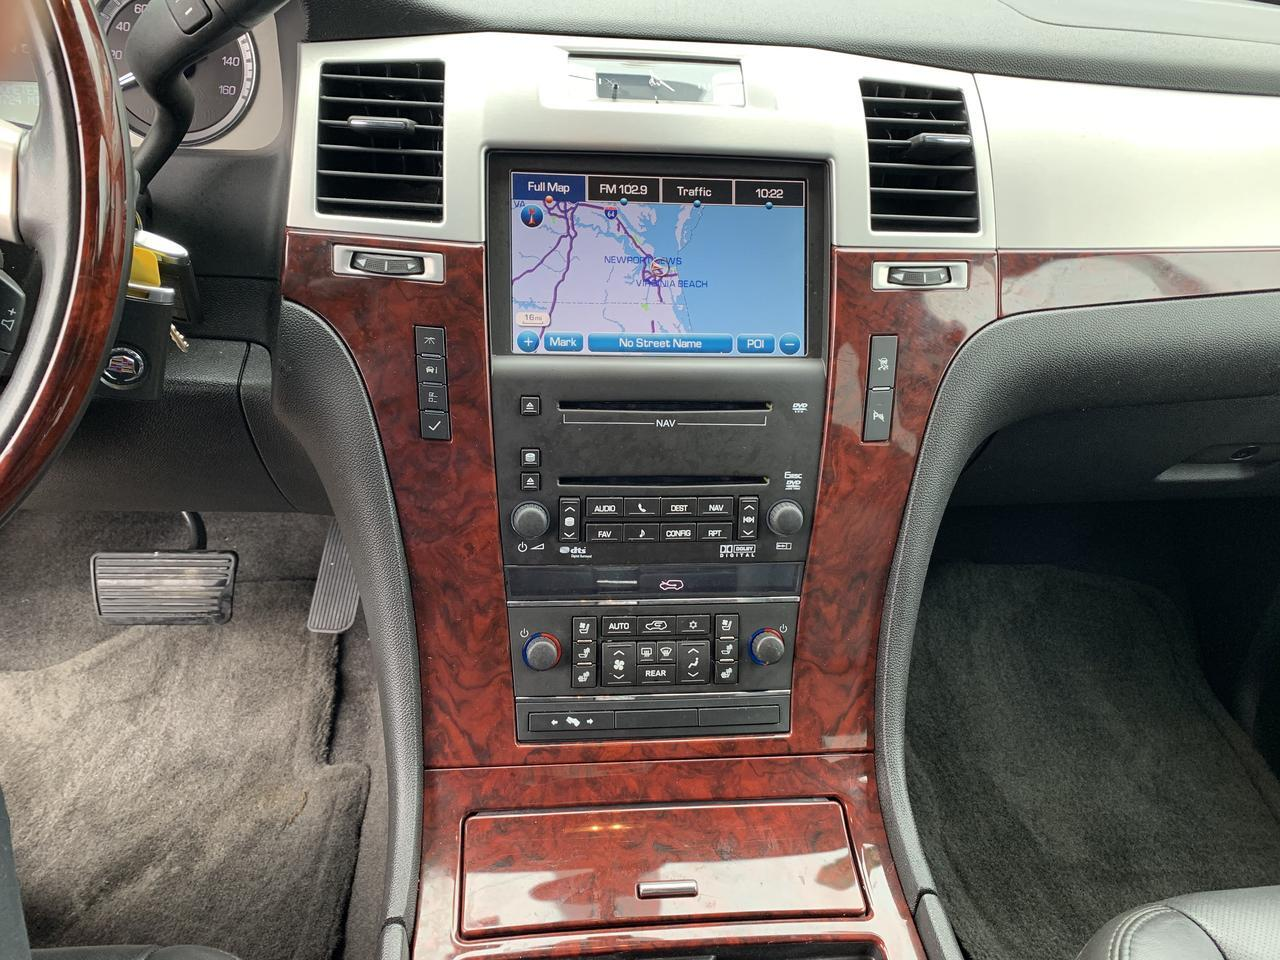 2010 CADILLAC ESCALADE LUXURY, WARRANTY, LEATHER, SUNROOF, DVD PLAYER, 3RD ROW, NAV, FULLY LOADED, 1 OWNER! Norfolk VA